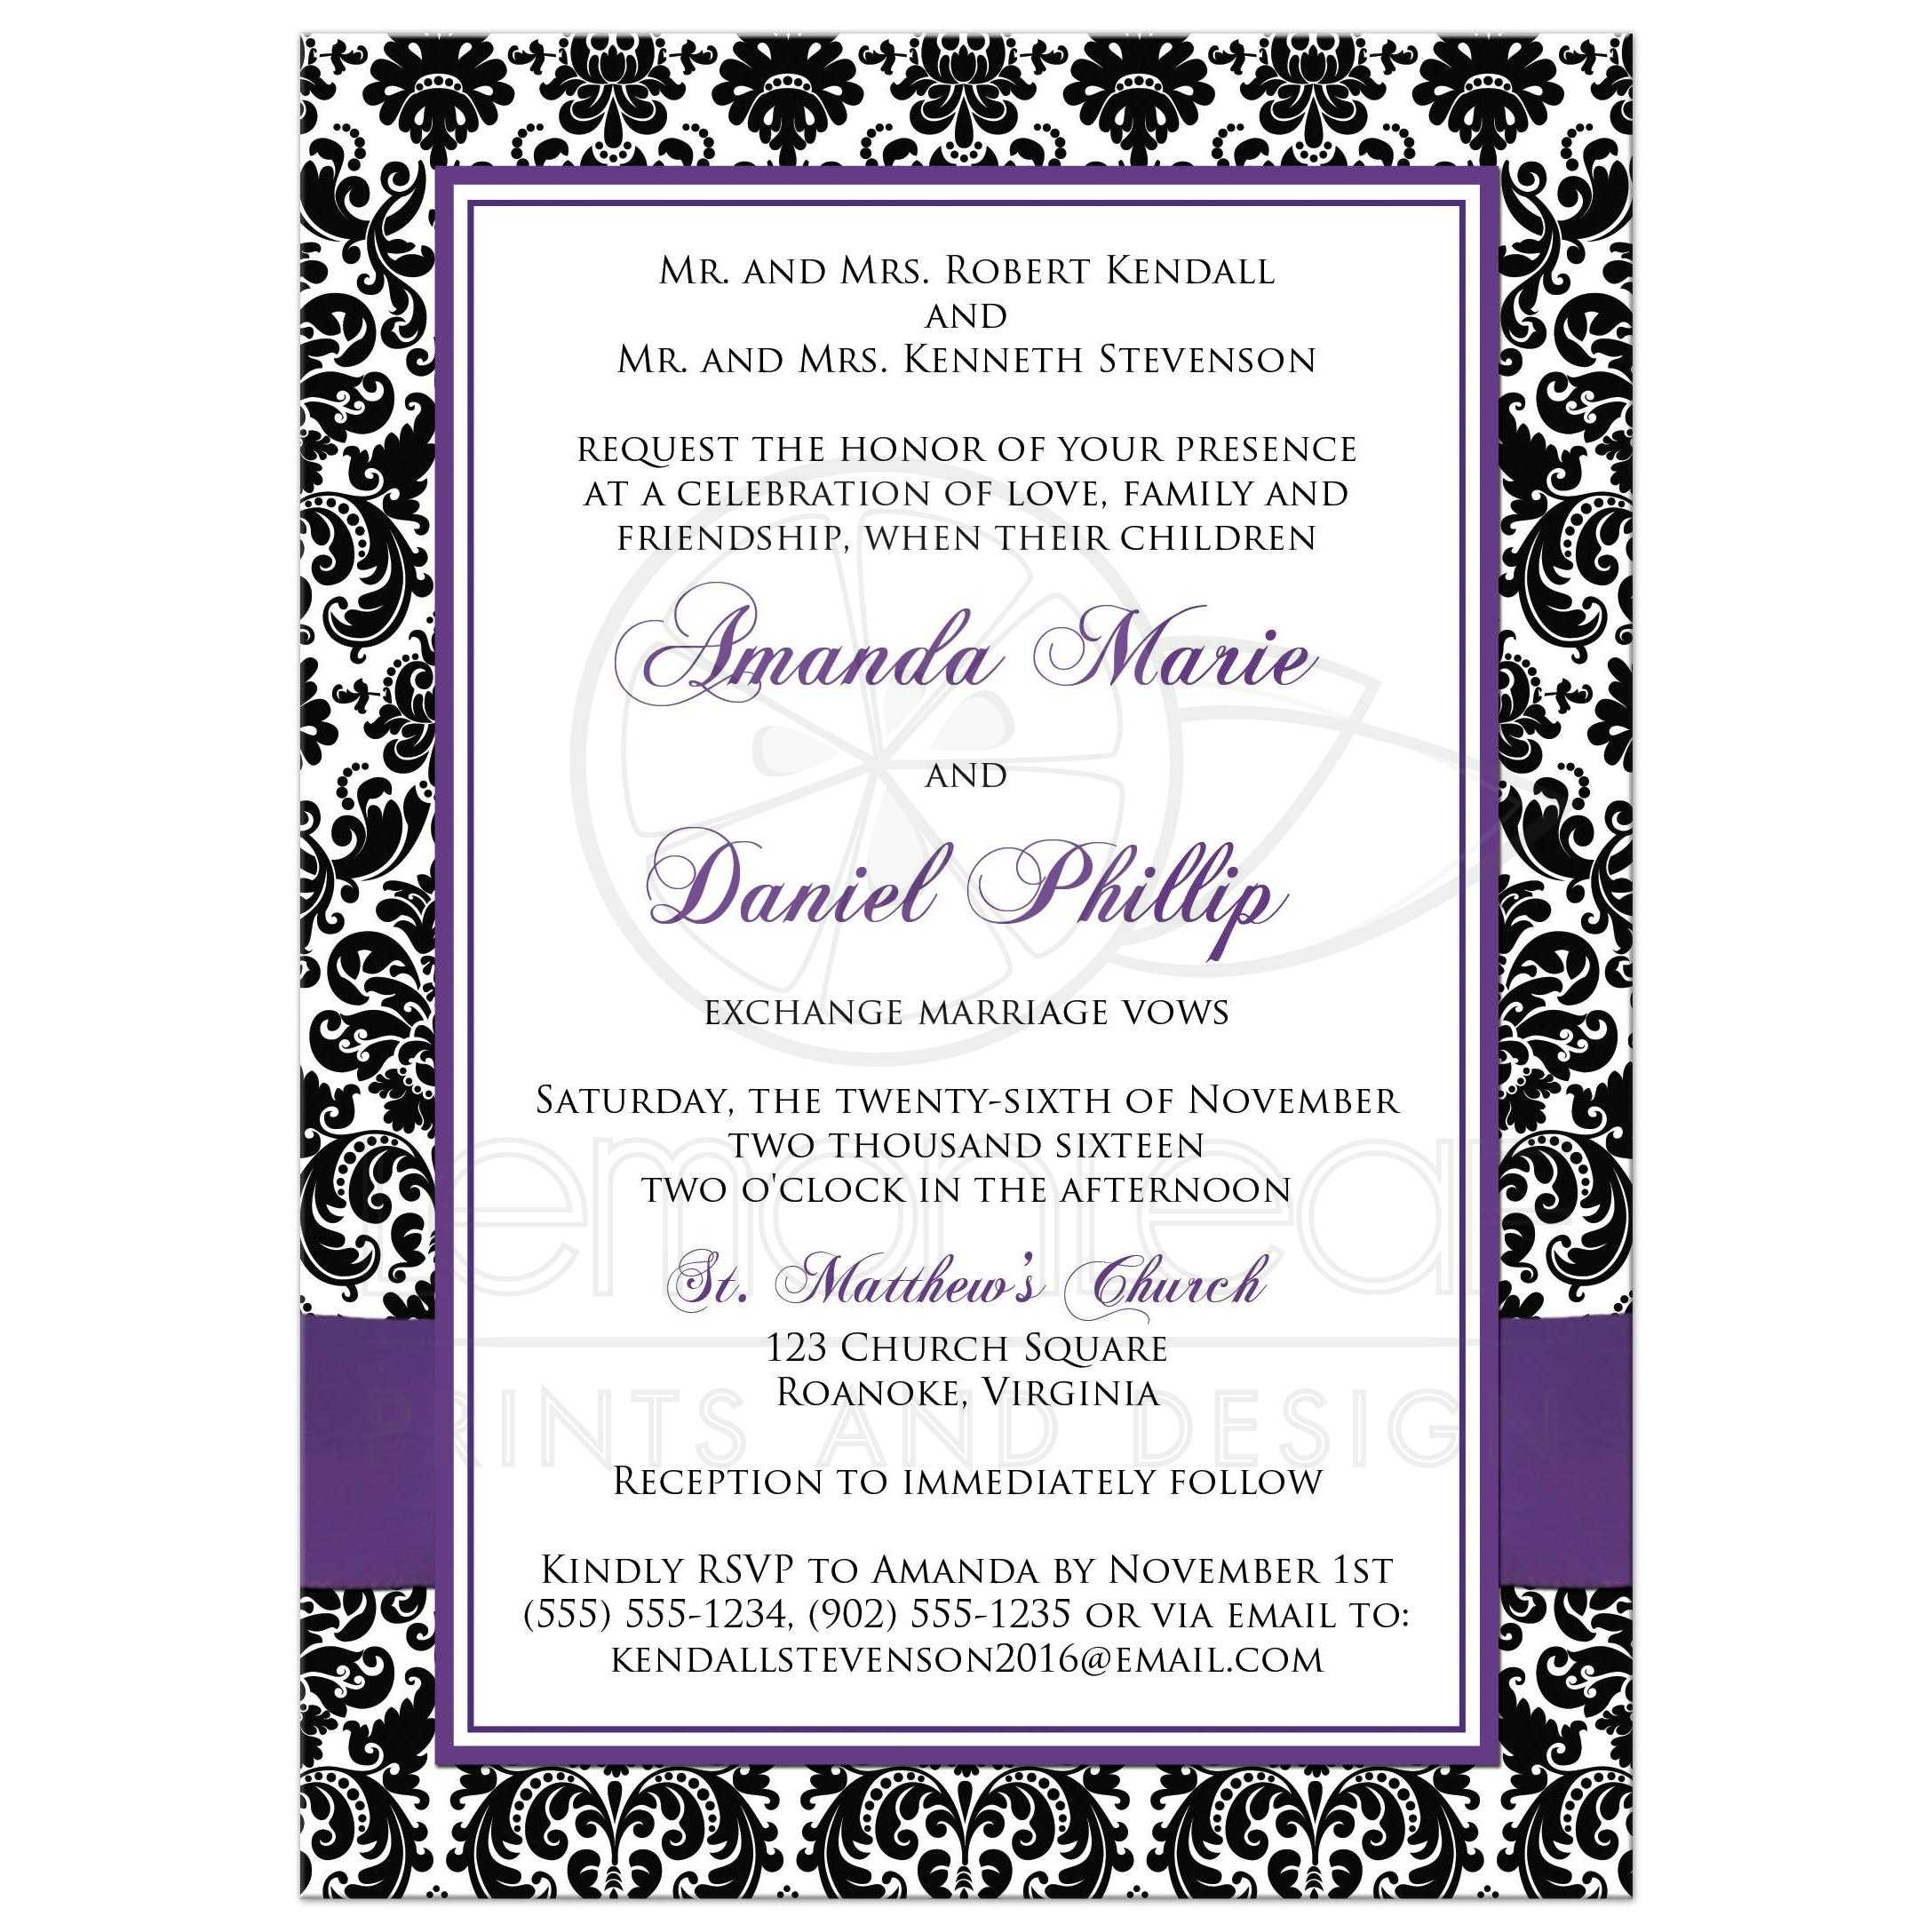 Invitation Wedding Templates for nice invitation template